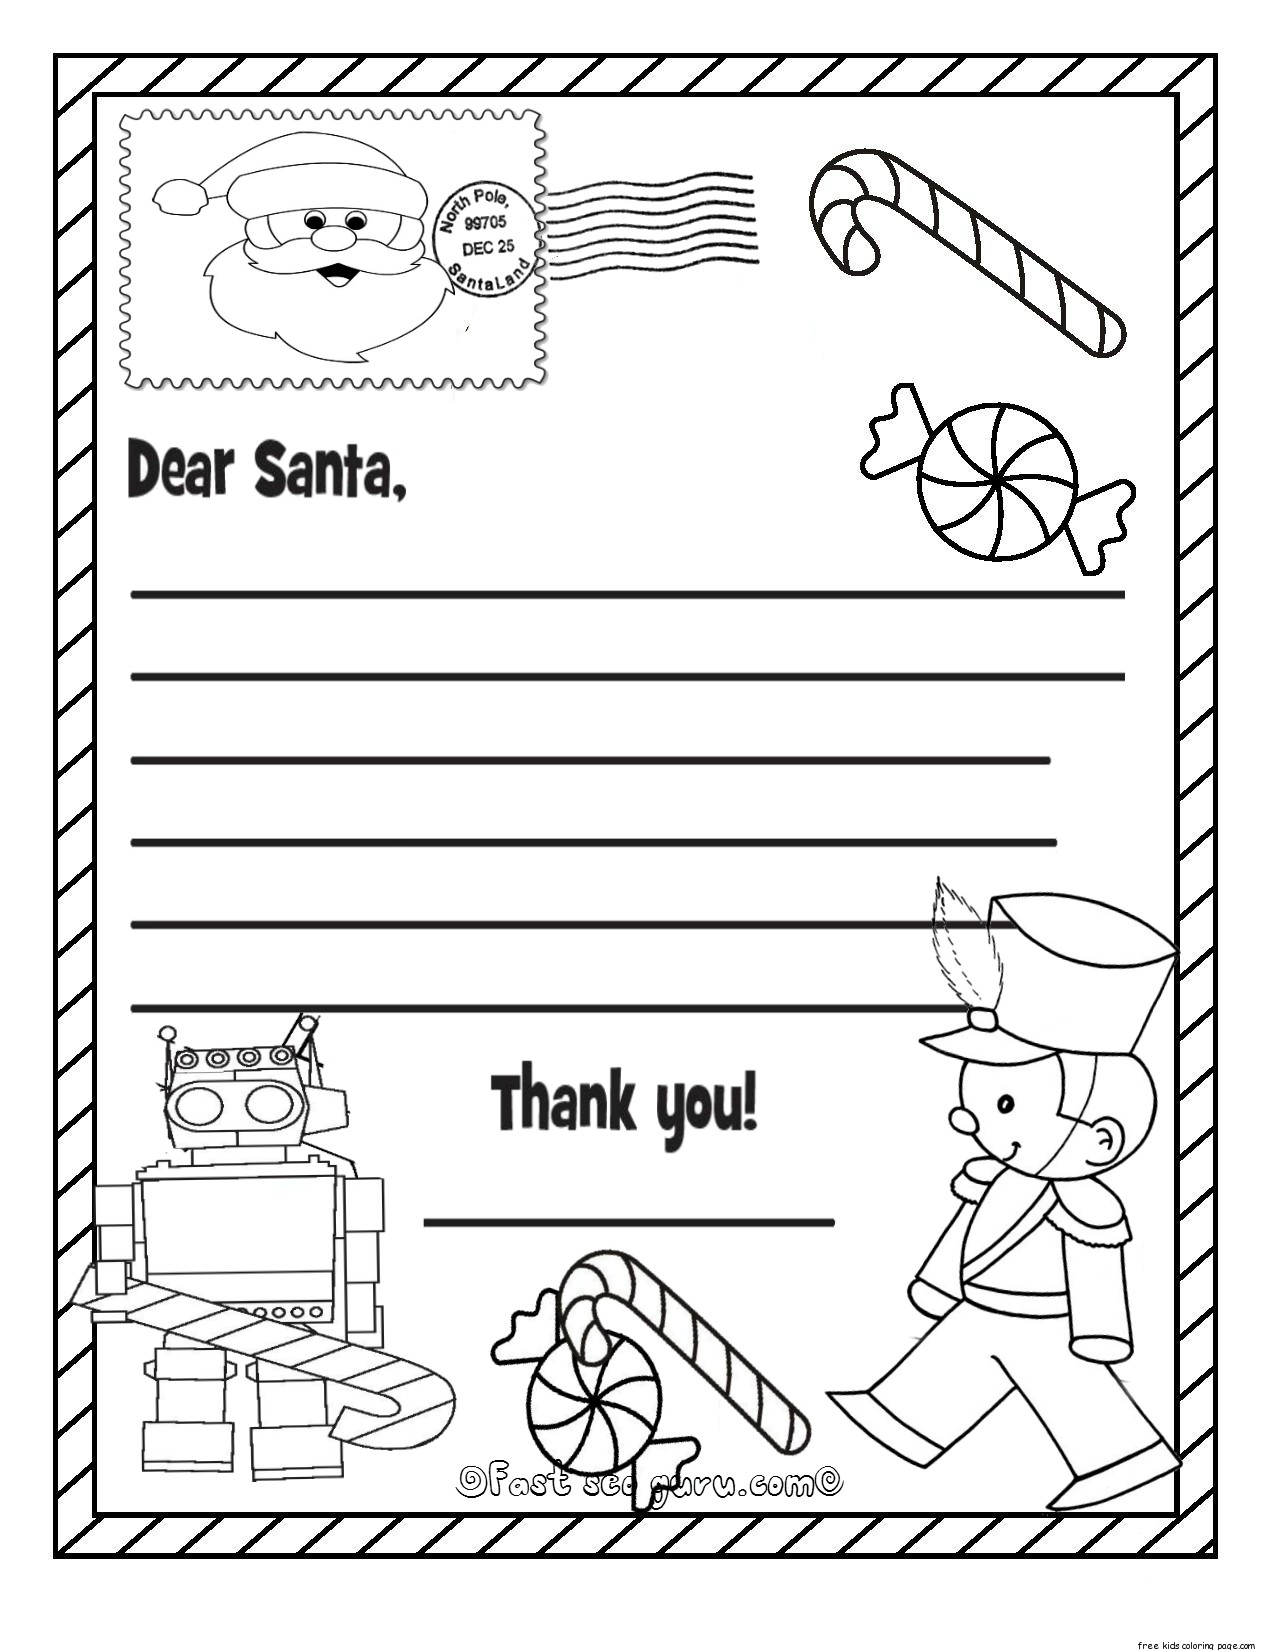 coloring santa letter template printable christmas wish list to santa claus for kids for coloring santa letter template